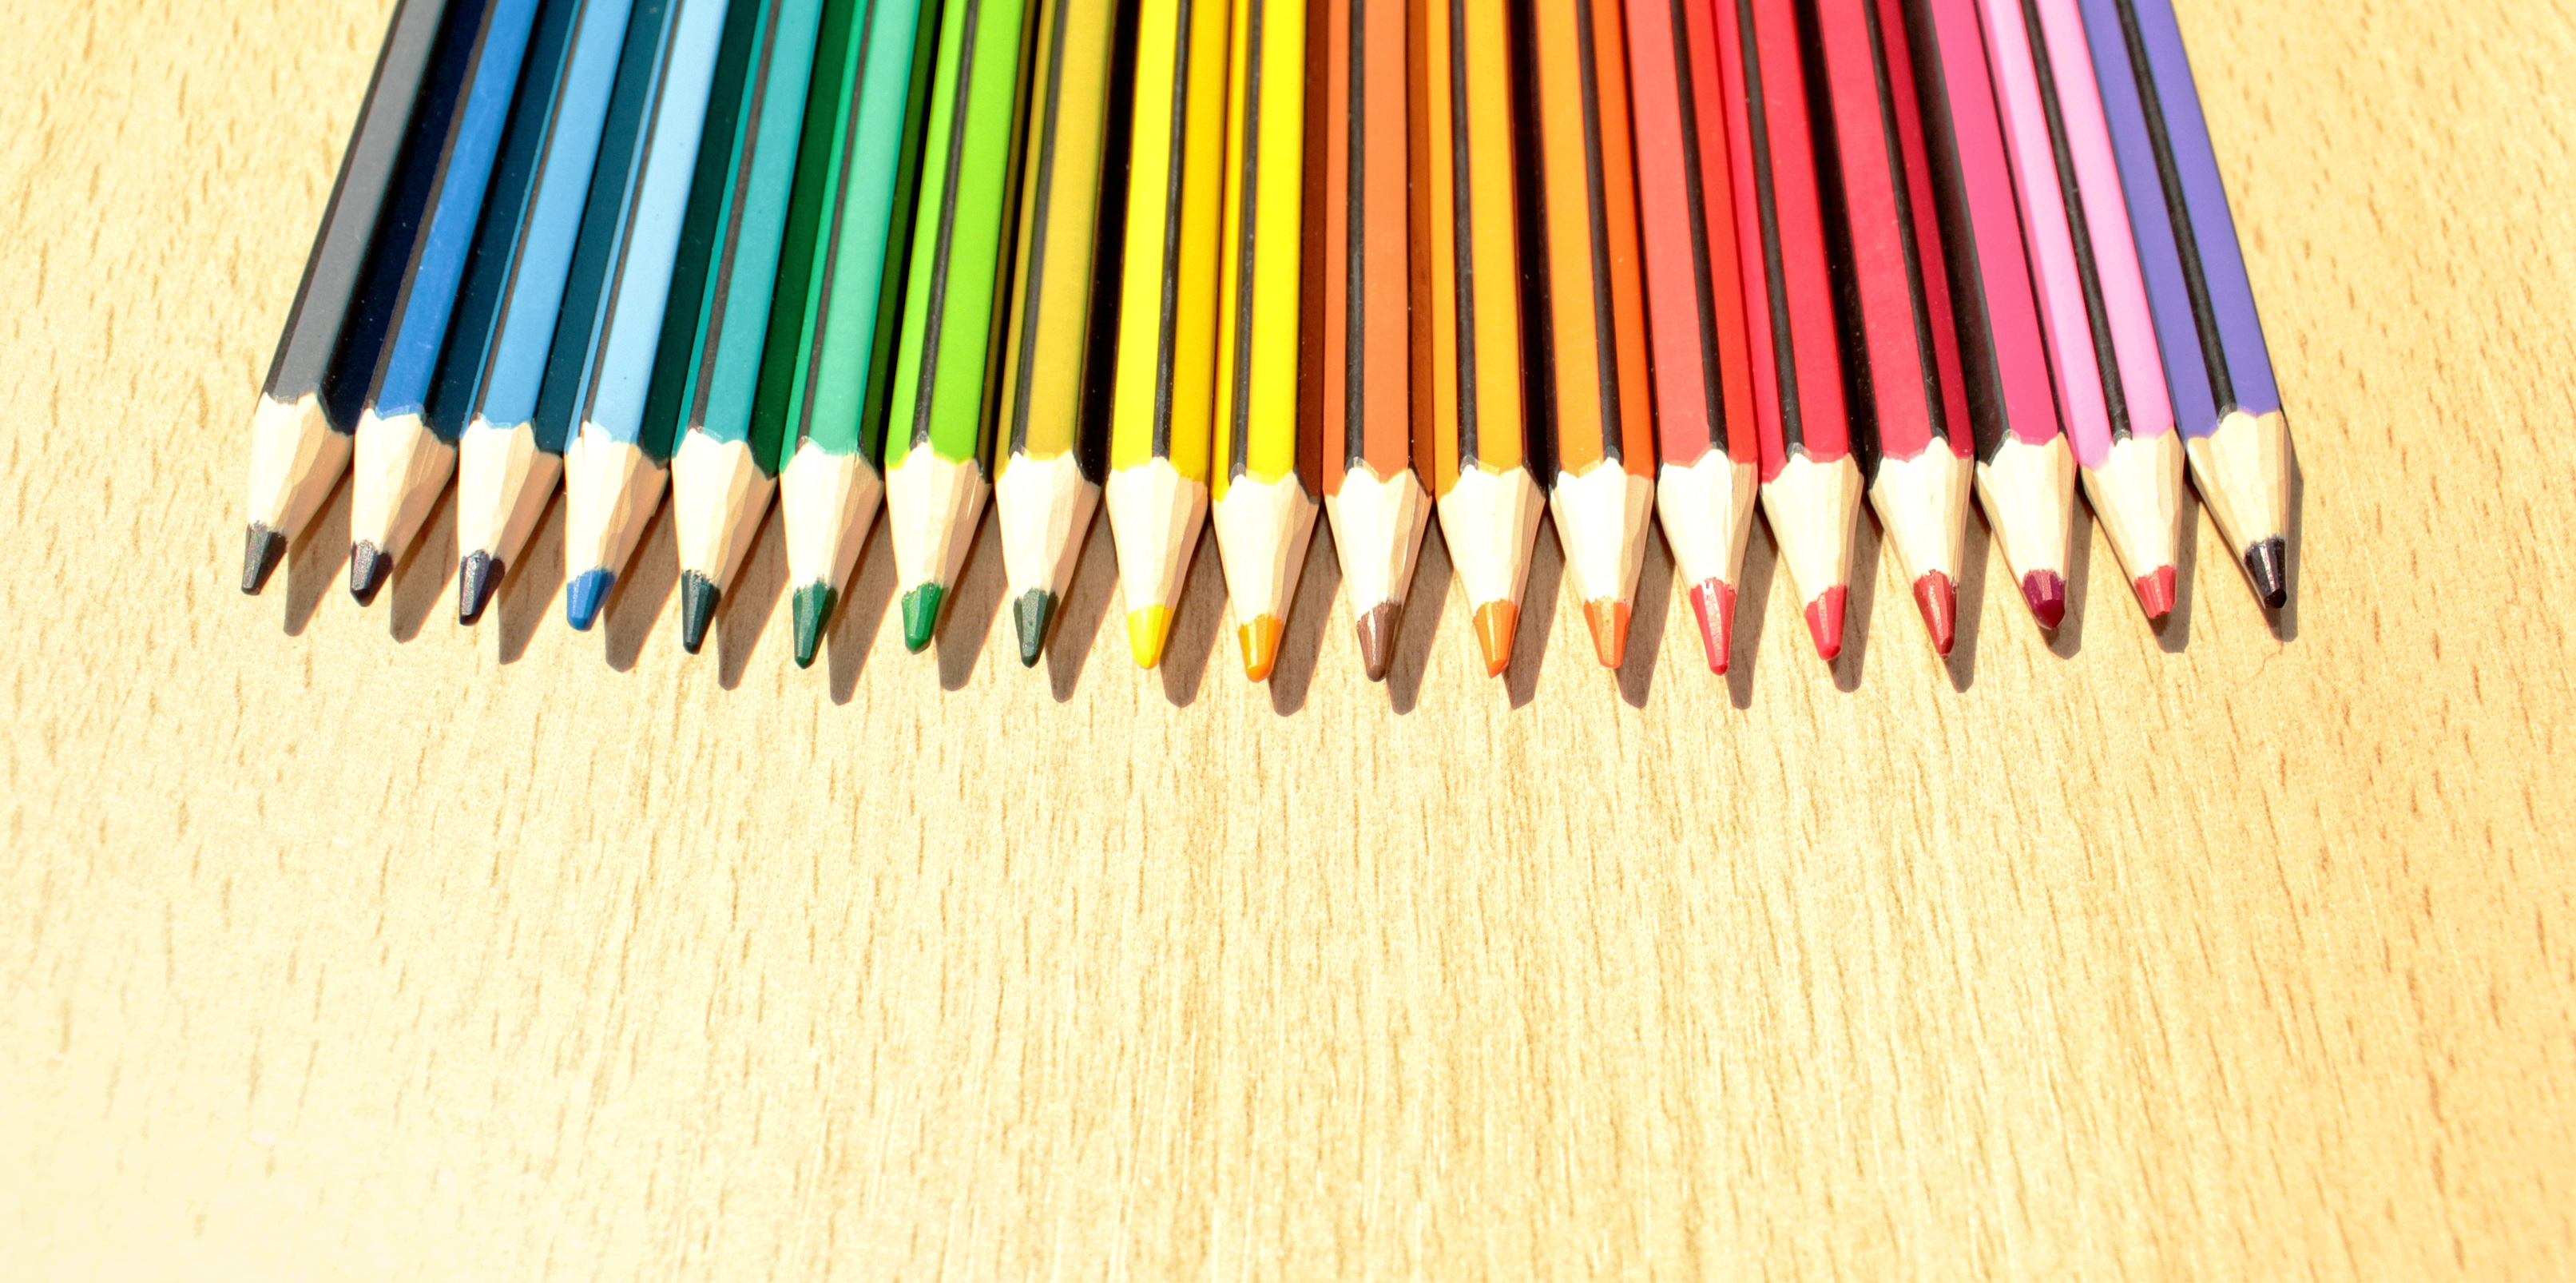 Colorful Pencils in a Row with Copyspace